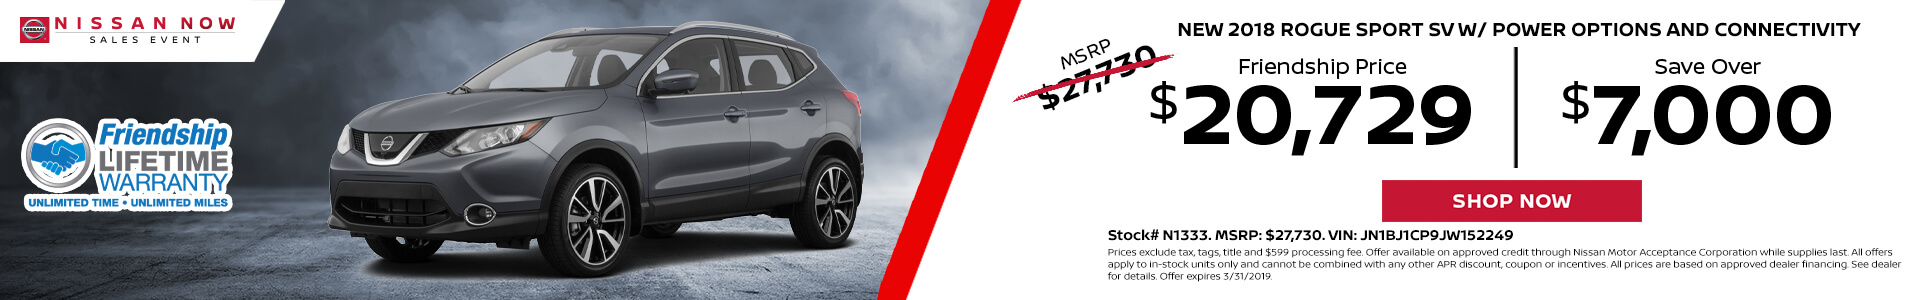 Nissan Rogue Sport $20,729 Purchase